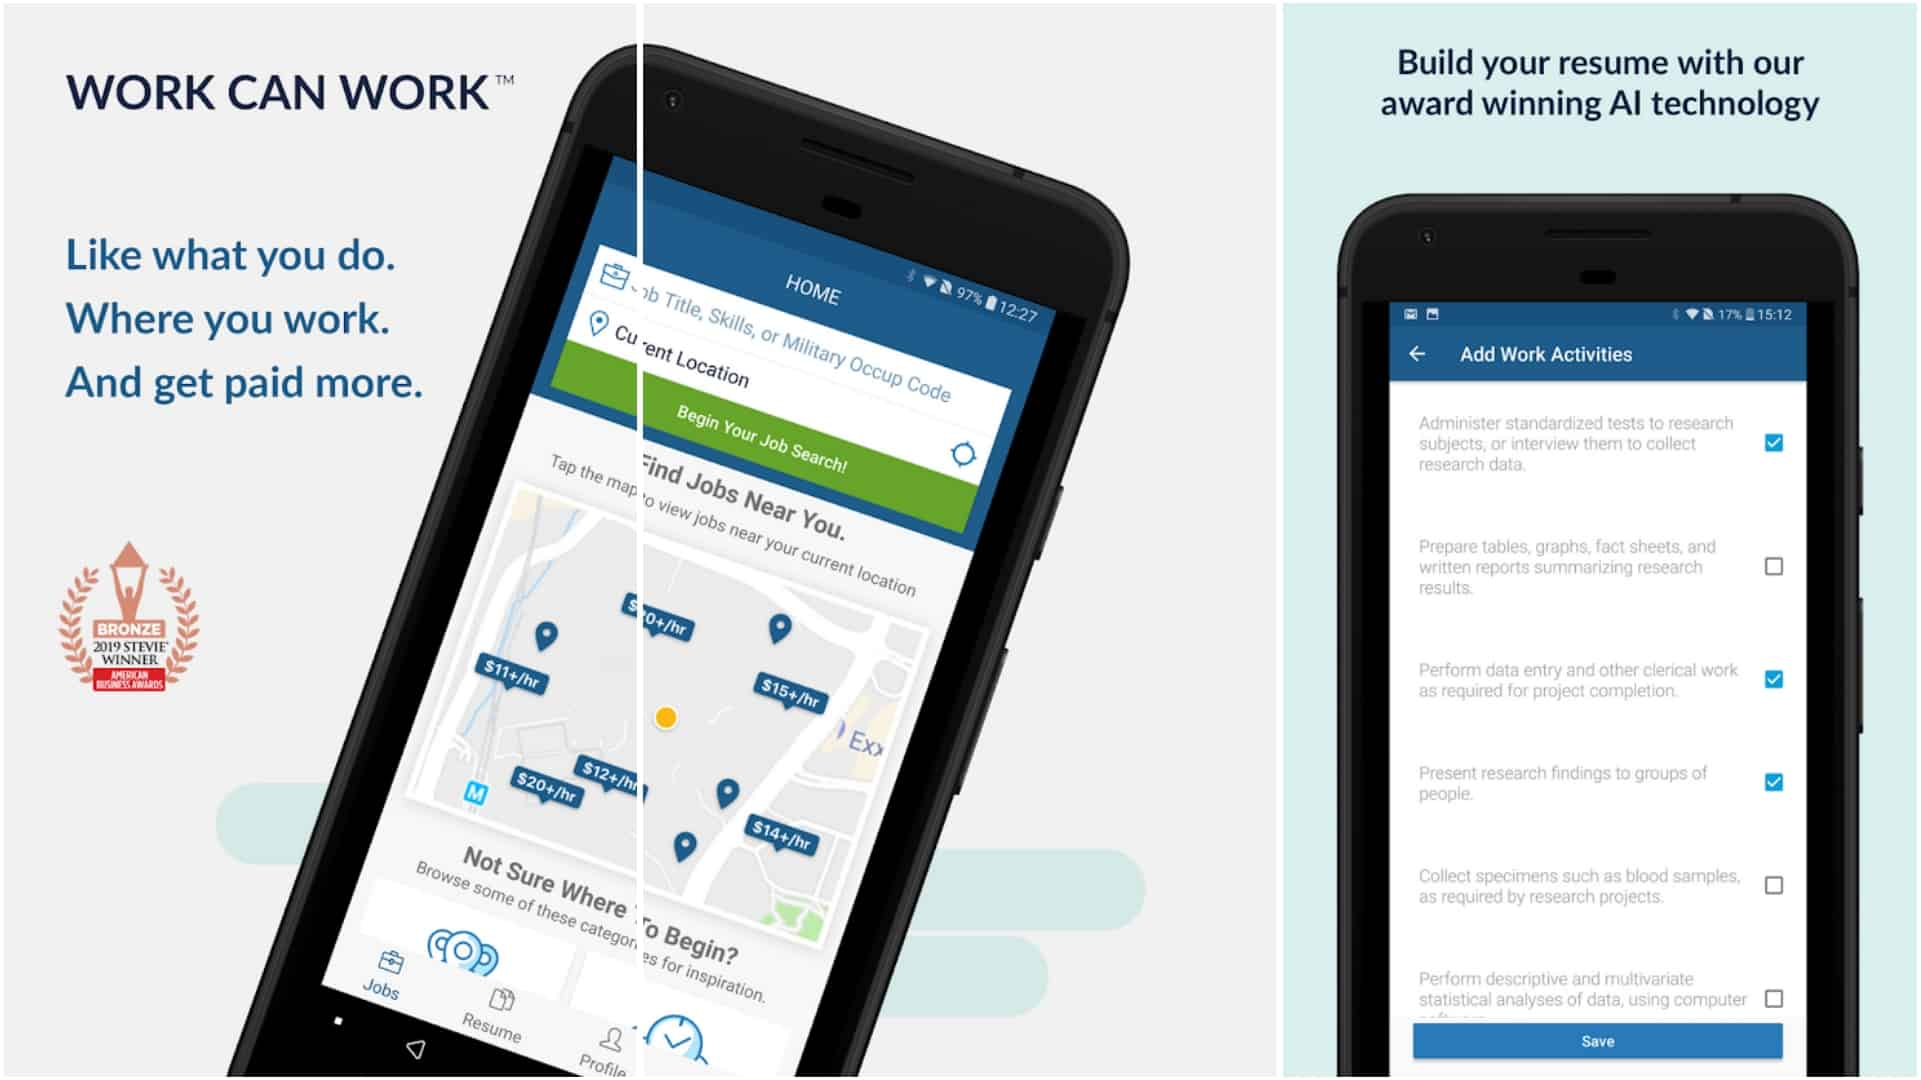 CareerBuilder app image June 2020